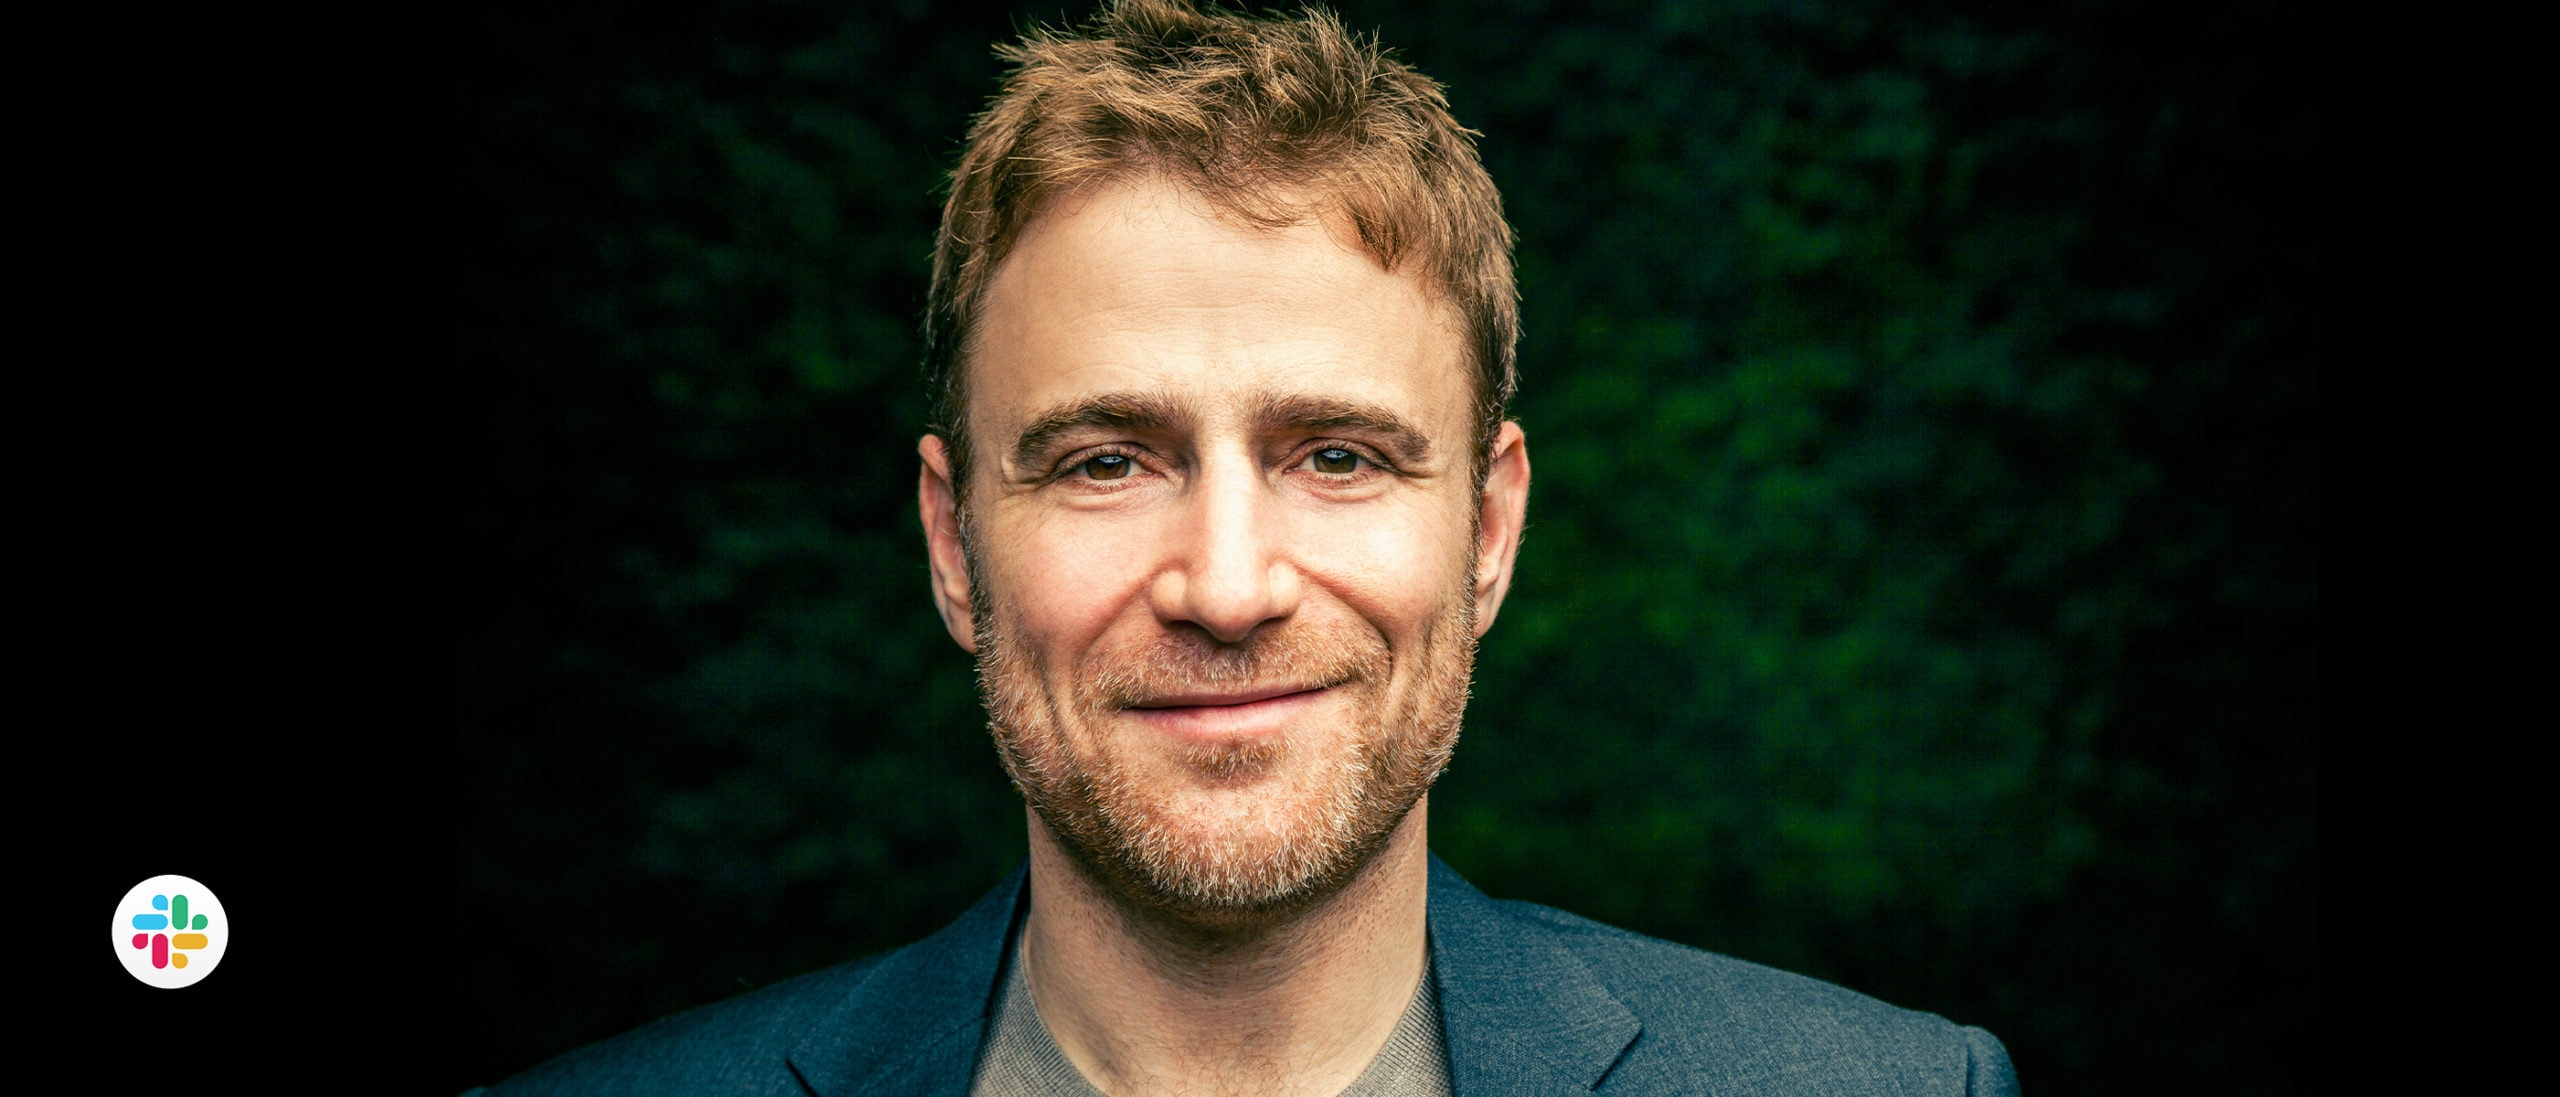 Portrait of Stewart Butterfield, CEO and co-founder